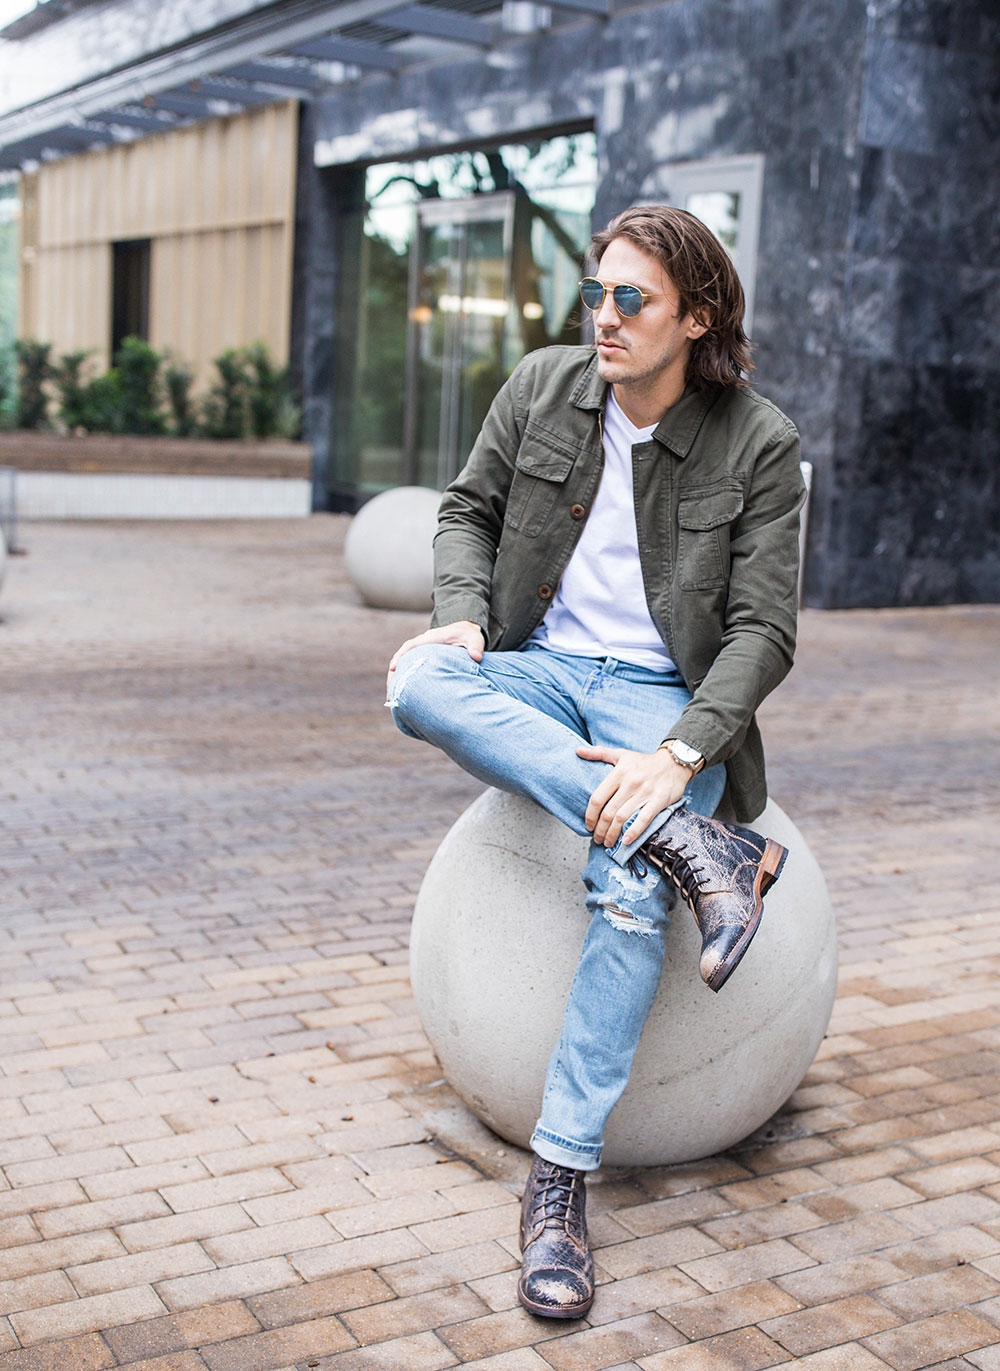 Mens Green Military Jacket - White V Neck Tee - Distressed Denim - Black Distressed Boots BED | STU